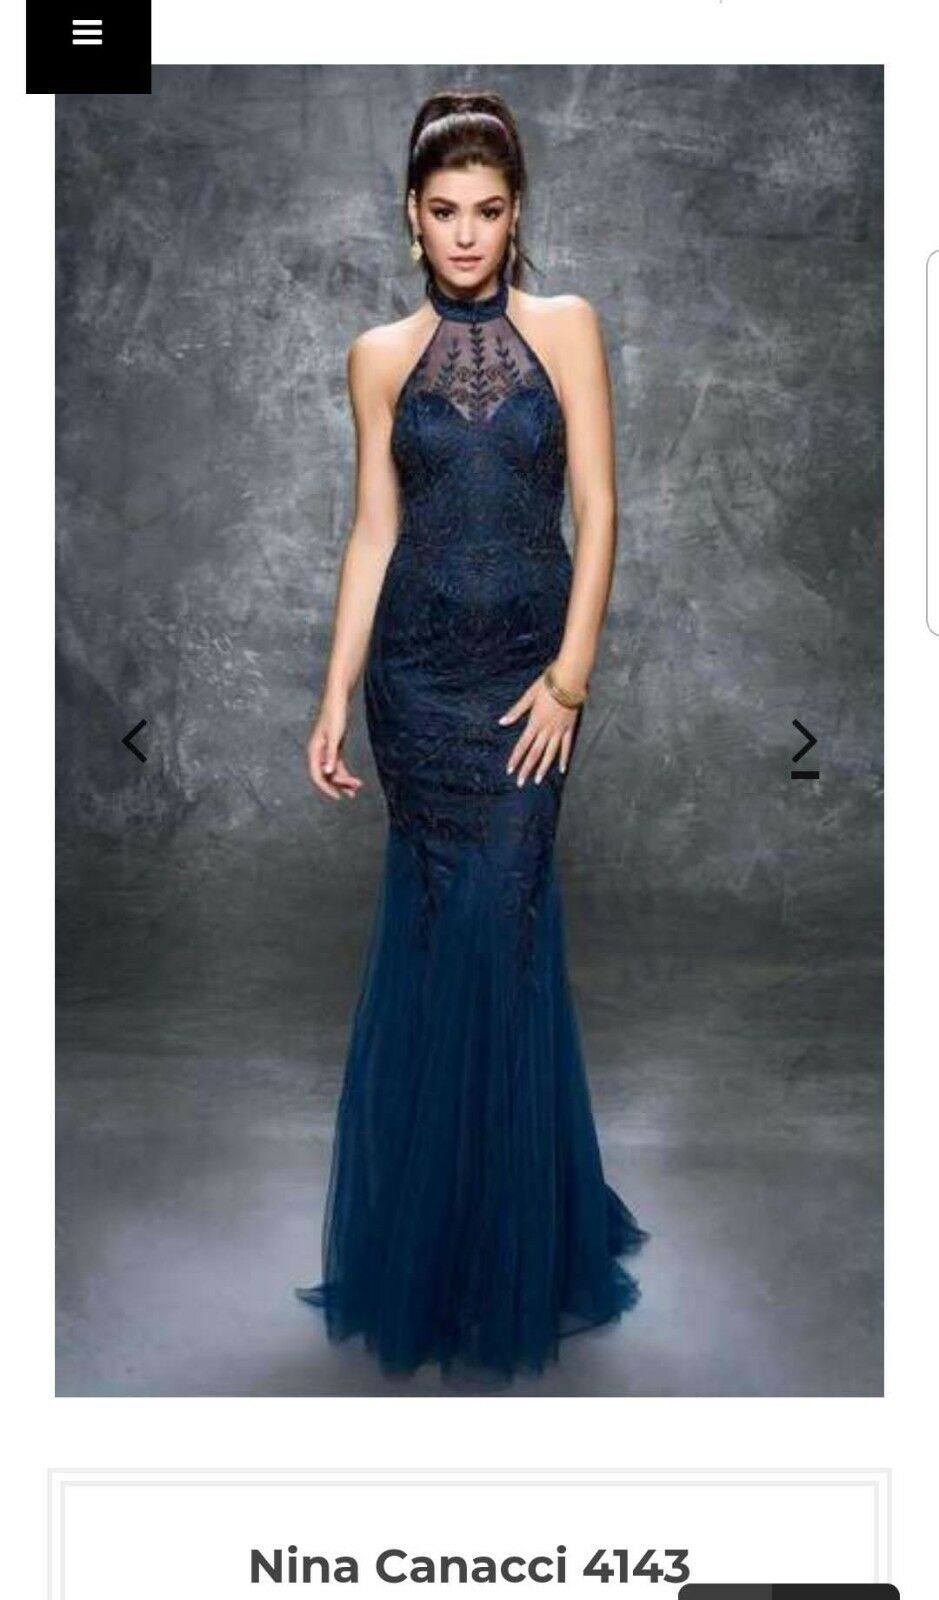 Nina Canacci Blue Full Length Dress 4143 - Size 10 - Wedding Prom and/or Formal